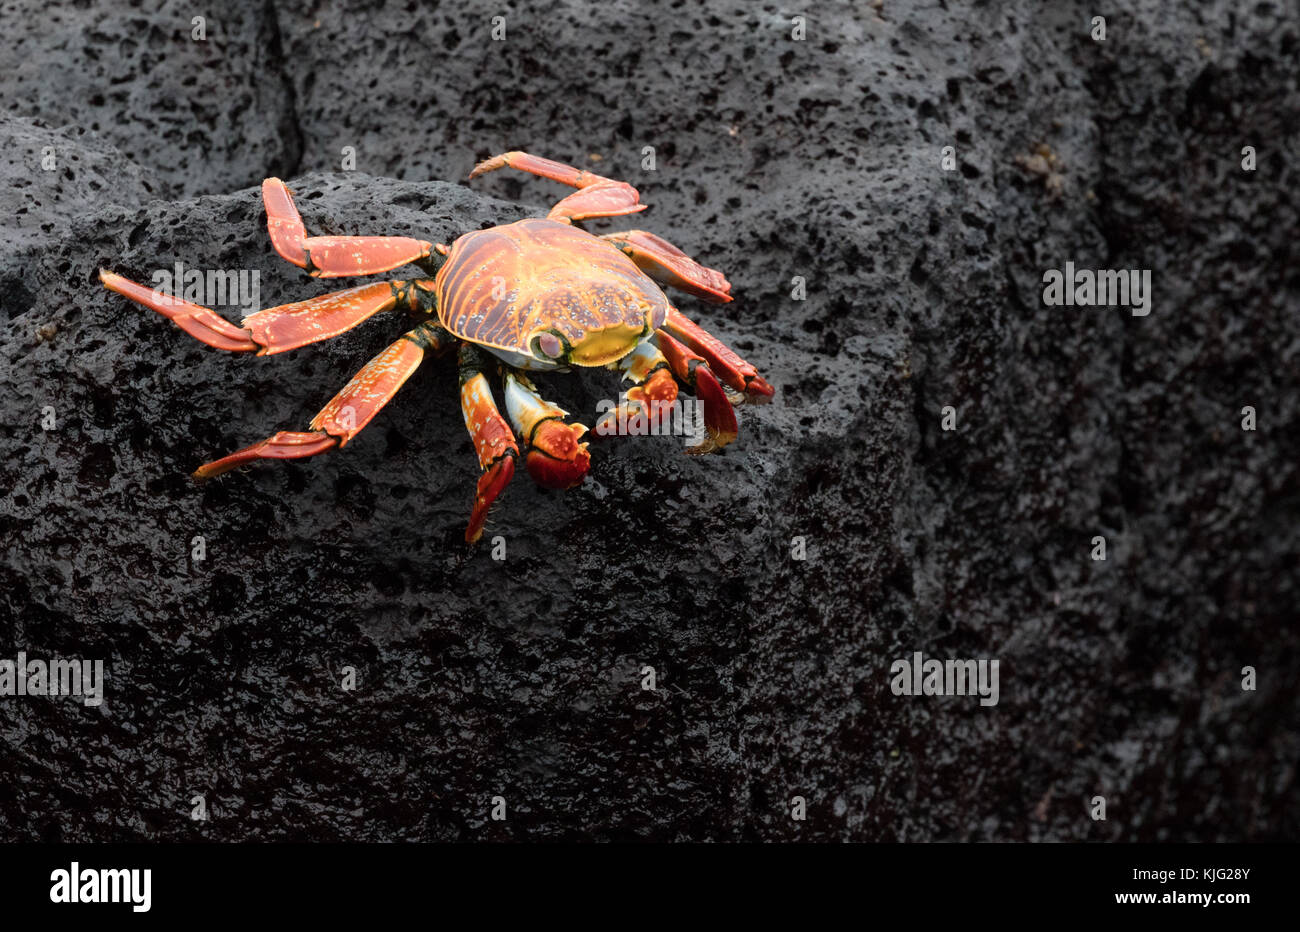 Sally Lightfoot crab, ( Grapsus grapsus  ), also known as Red rock crab or  Abuete negro,  Floreana Island, Galapagos - Stock Image